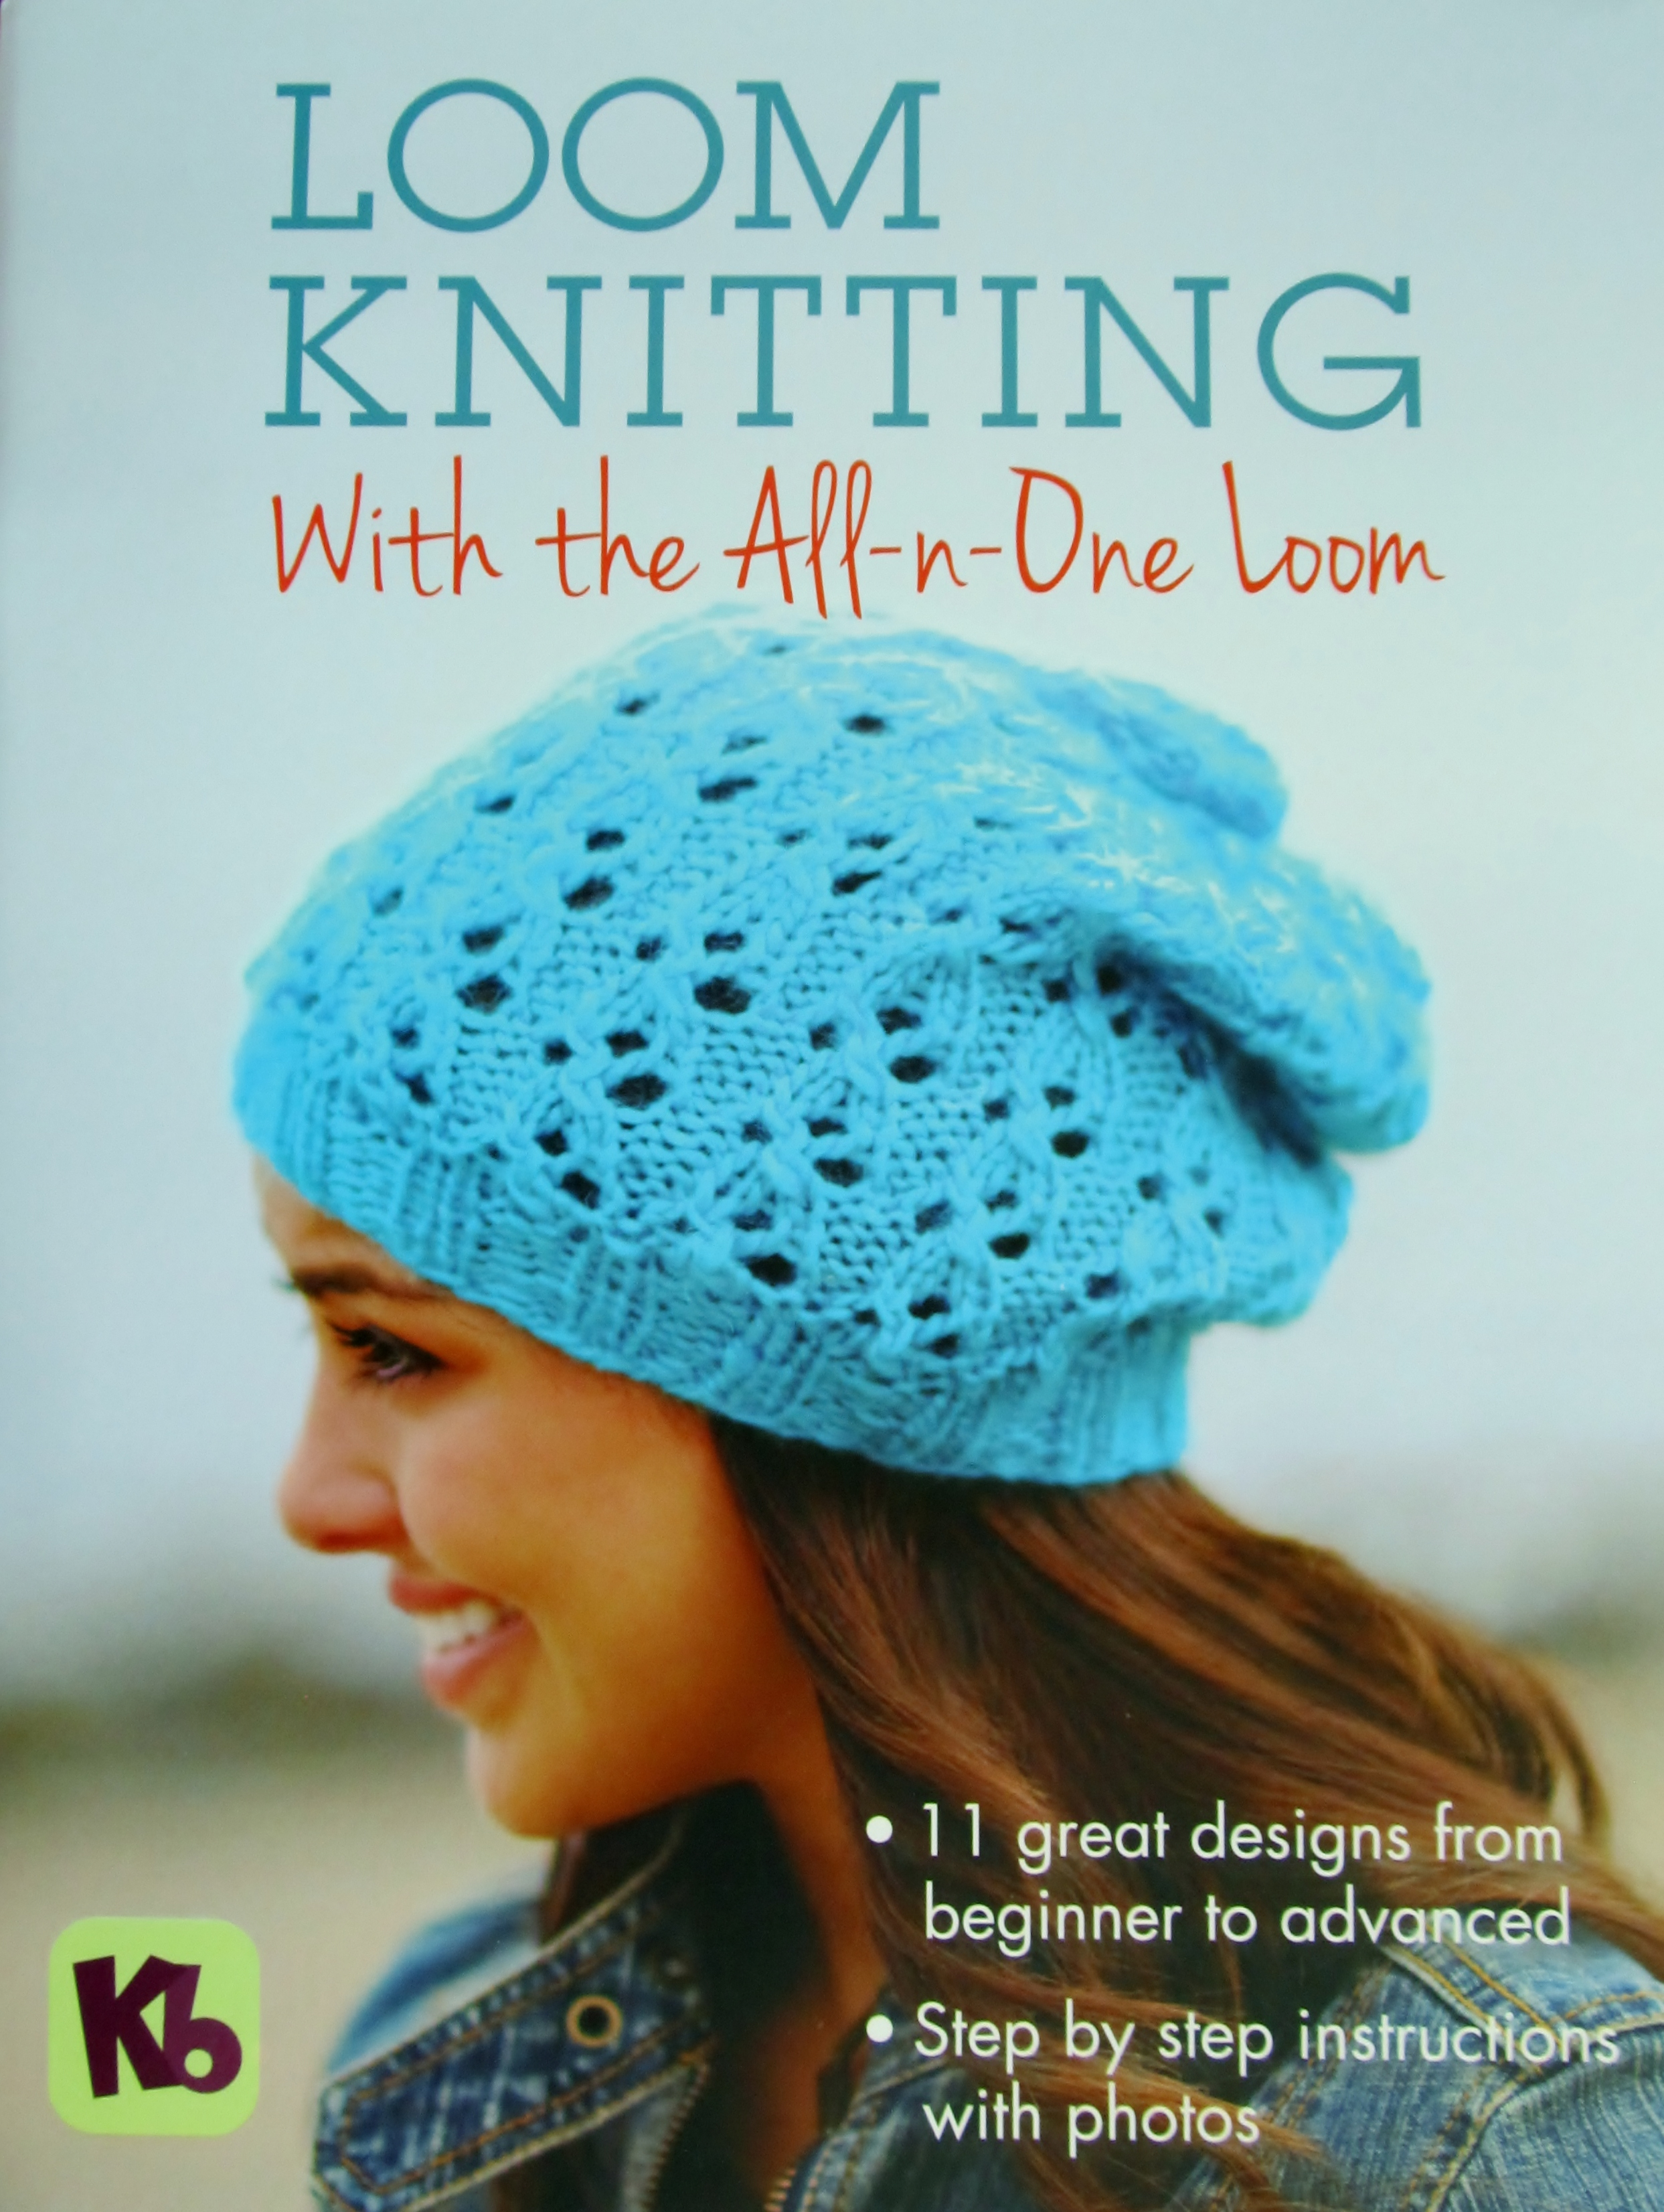 Loom Knitting with the All-n-One book Guppygirl